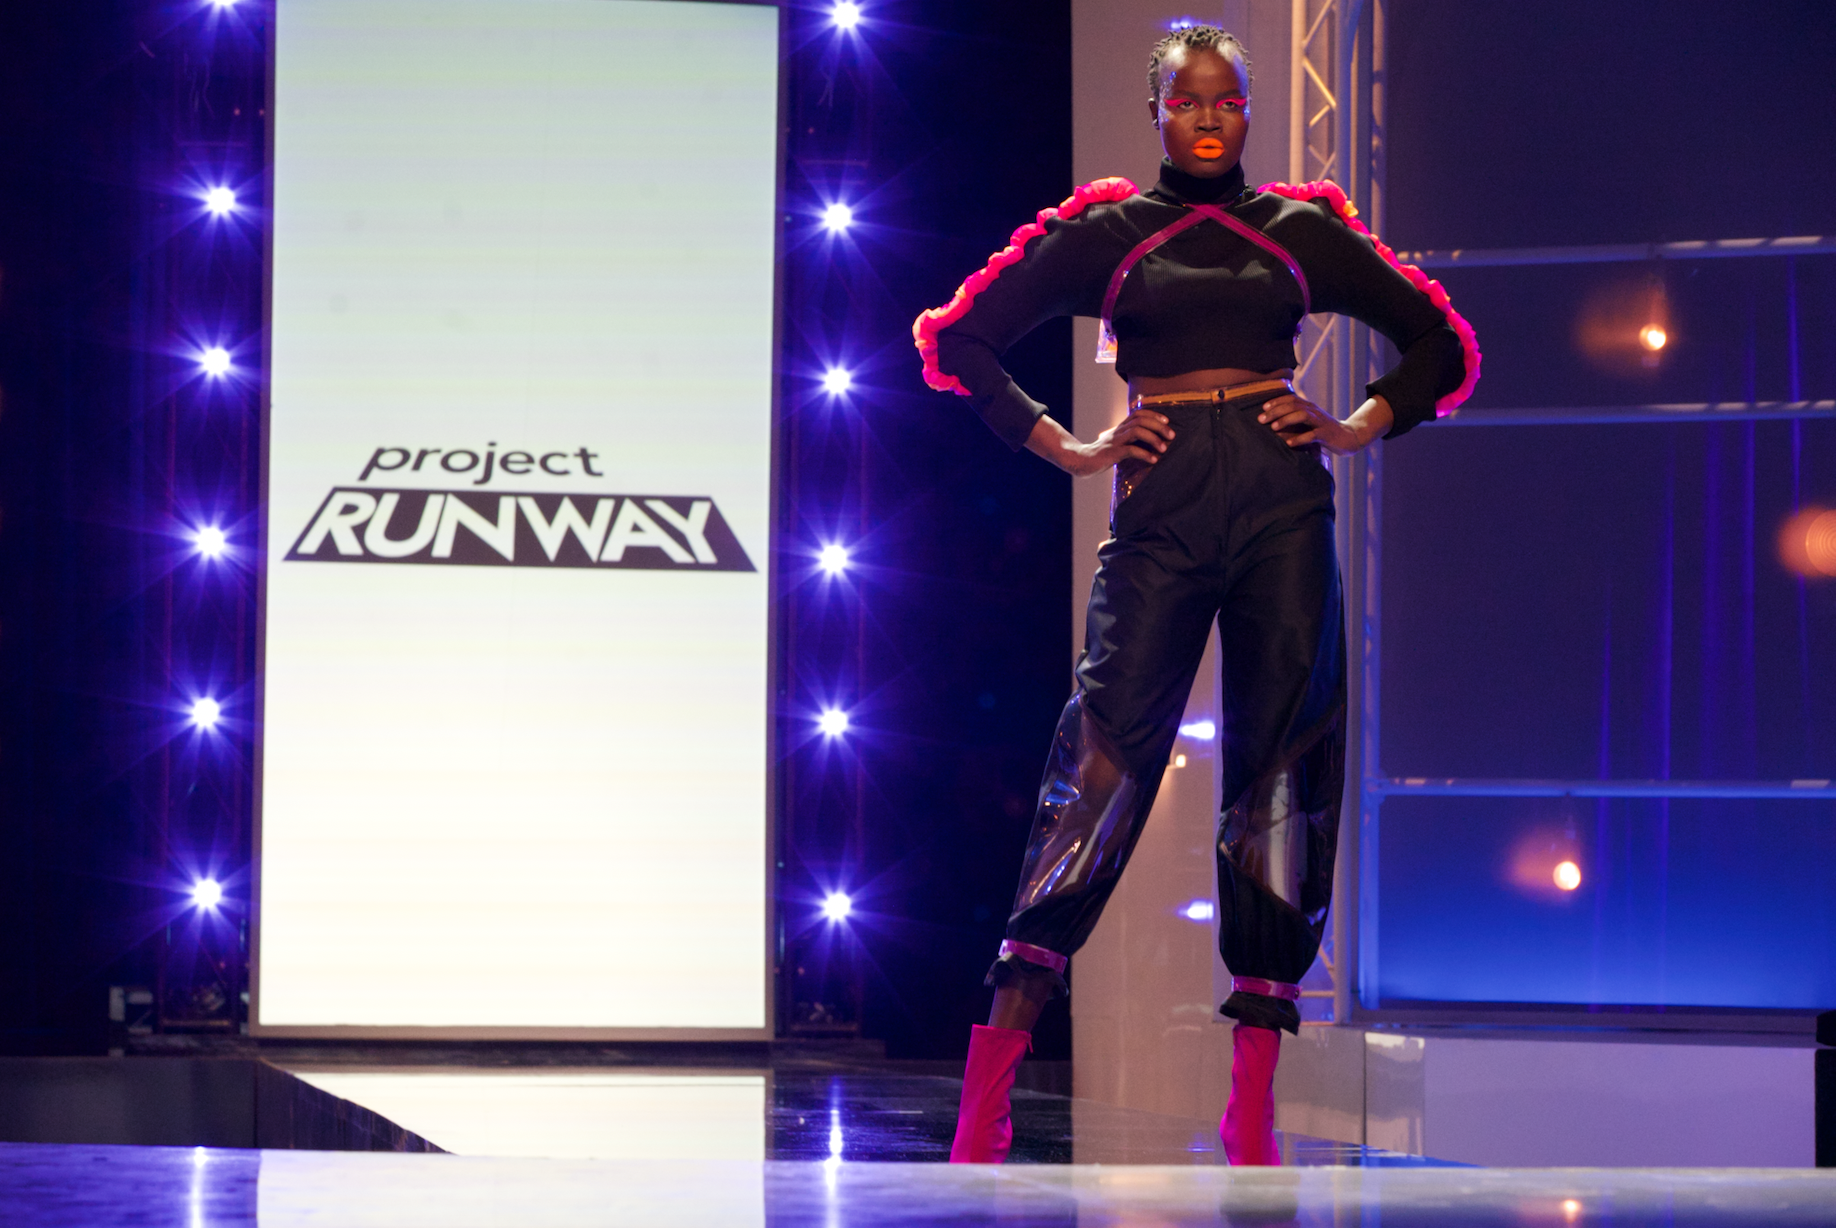 We Tried to Wear 'Project Runway' Makeup Looks in Real Life